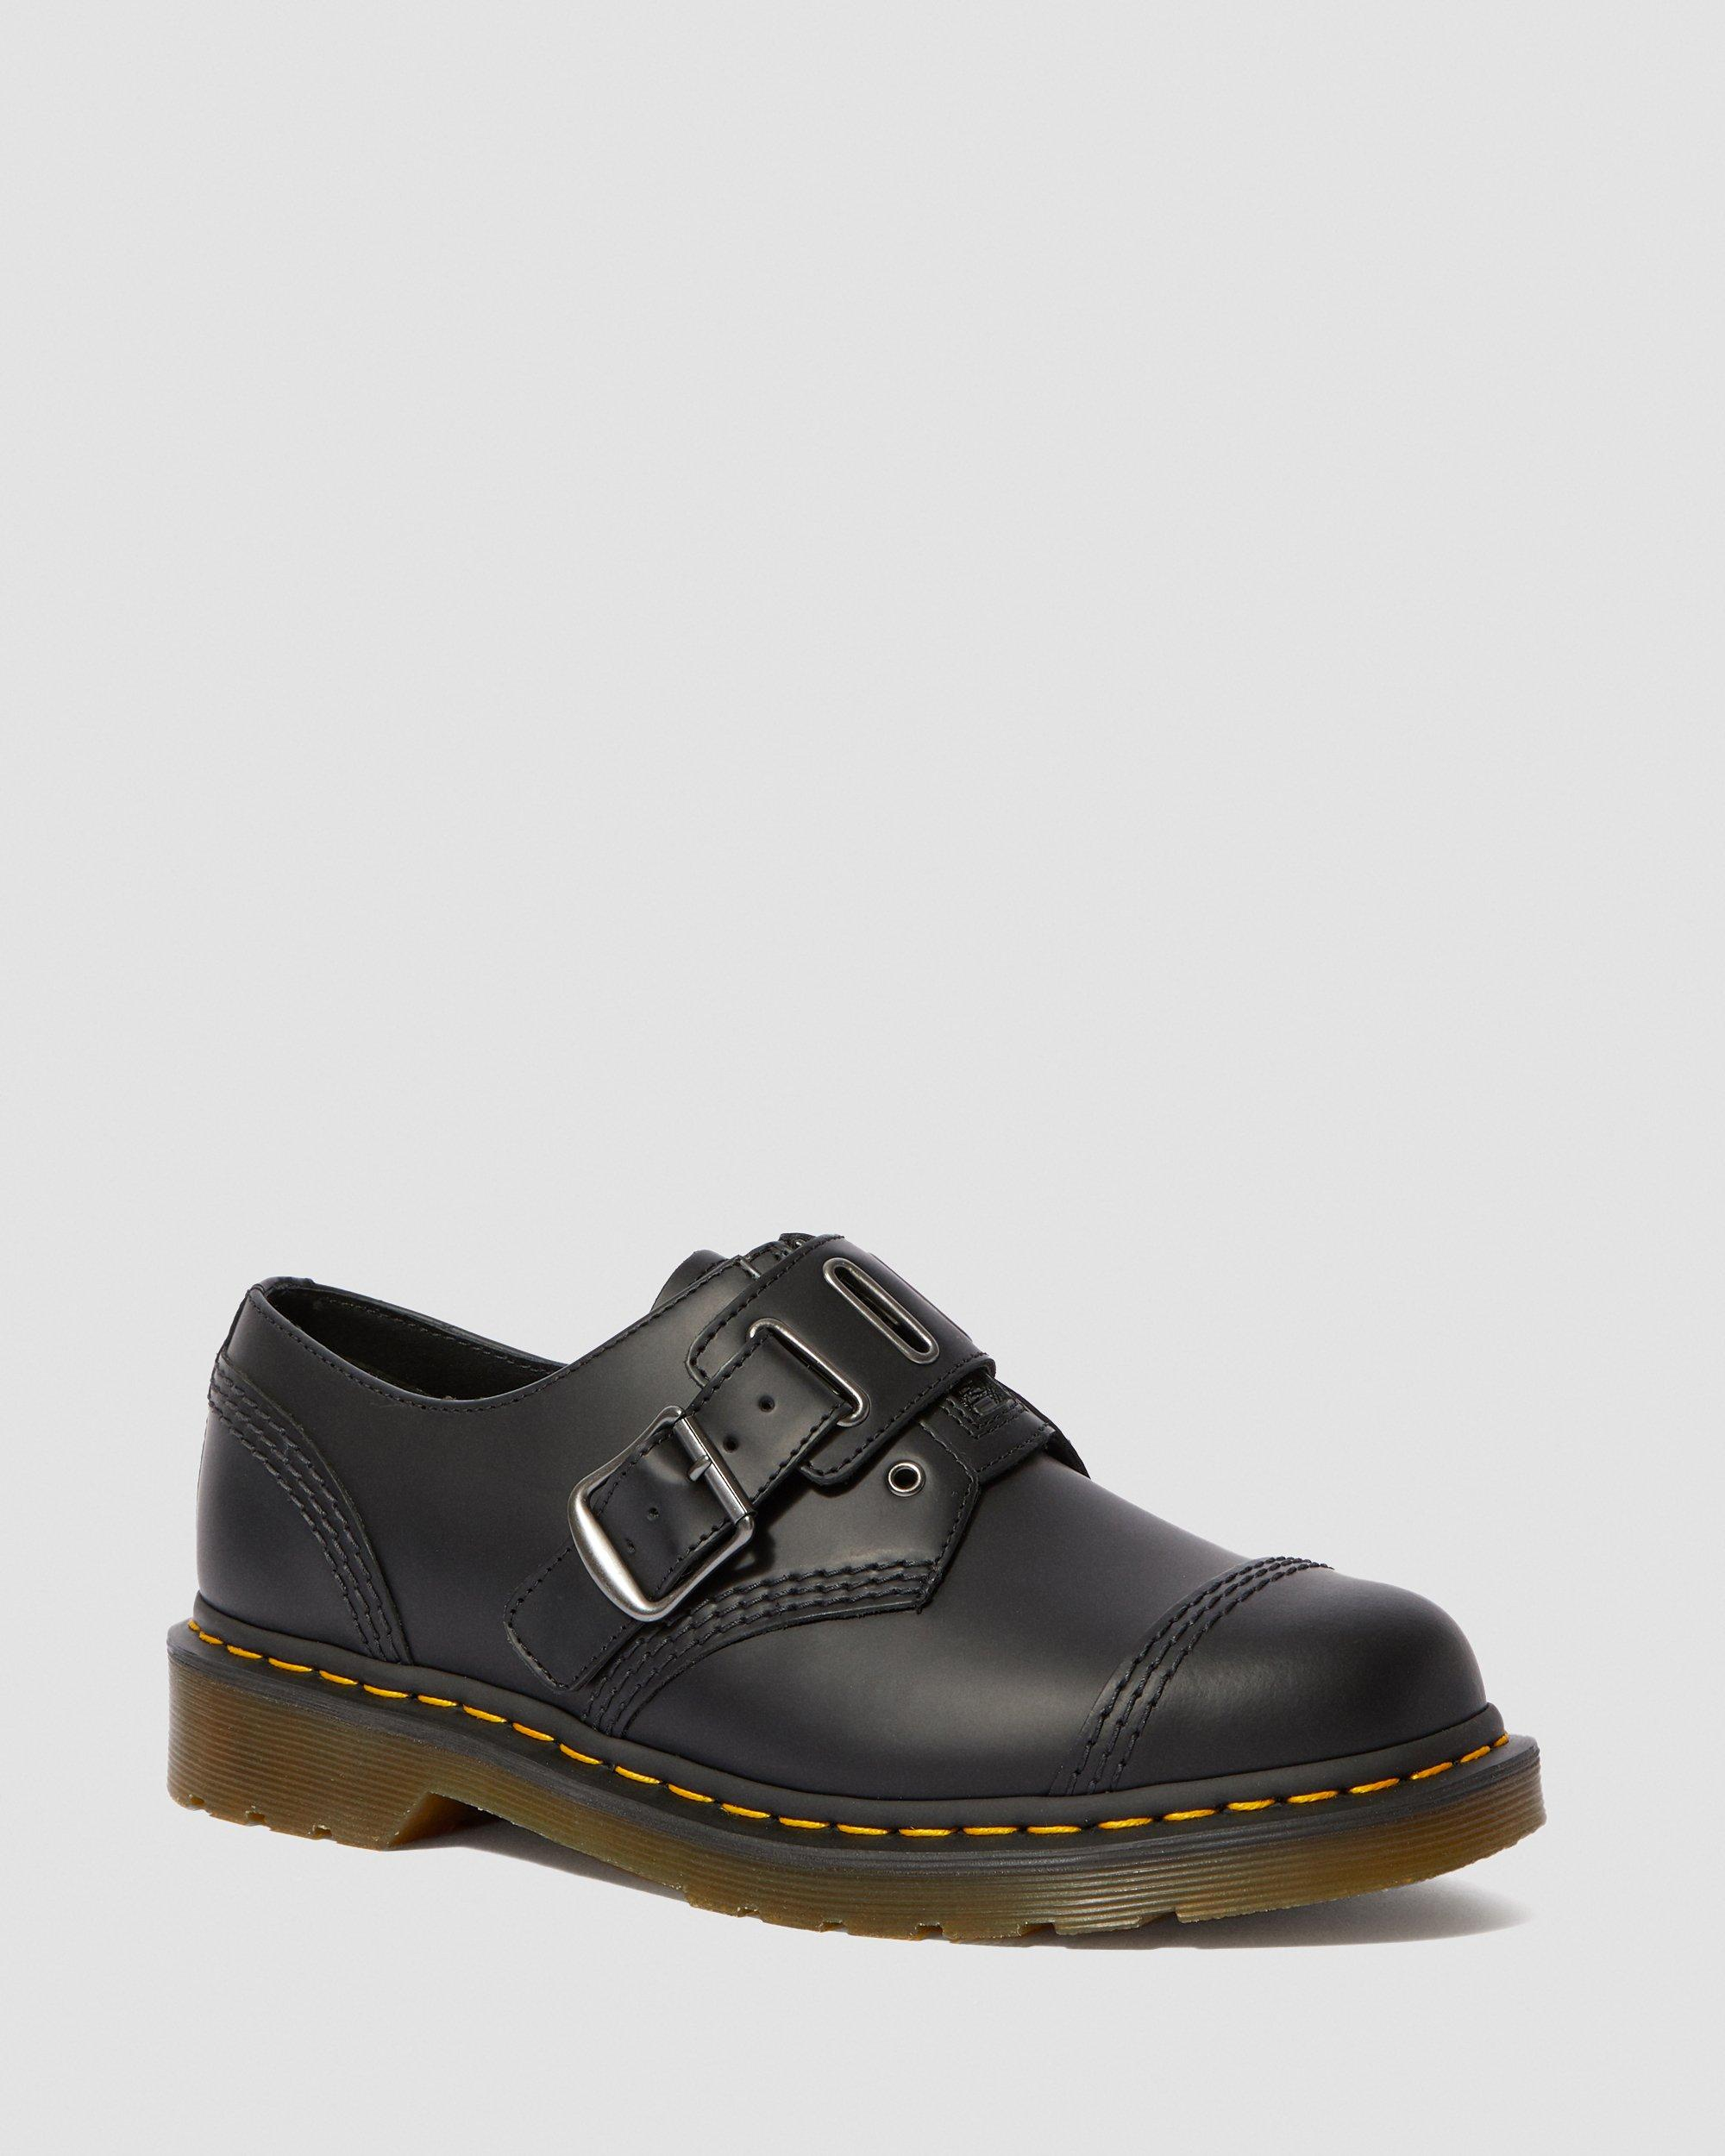 1461 QUYNN SMOOTH LEATHER BUCKLE SHOES